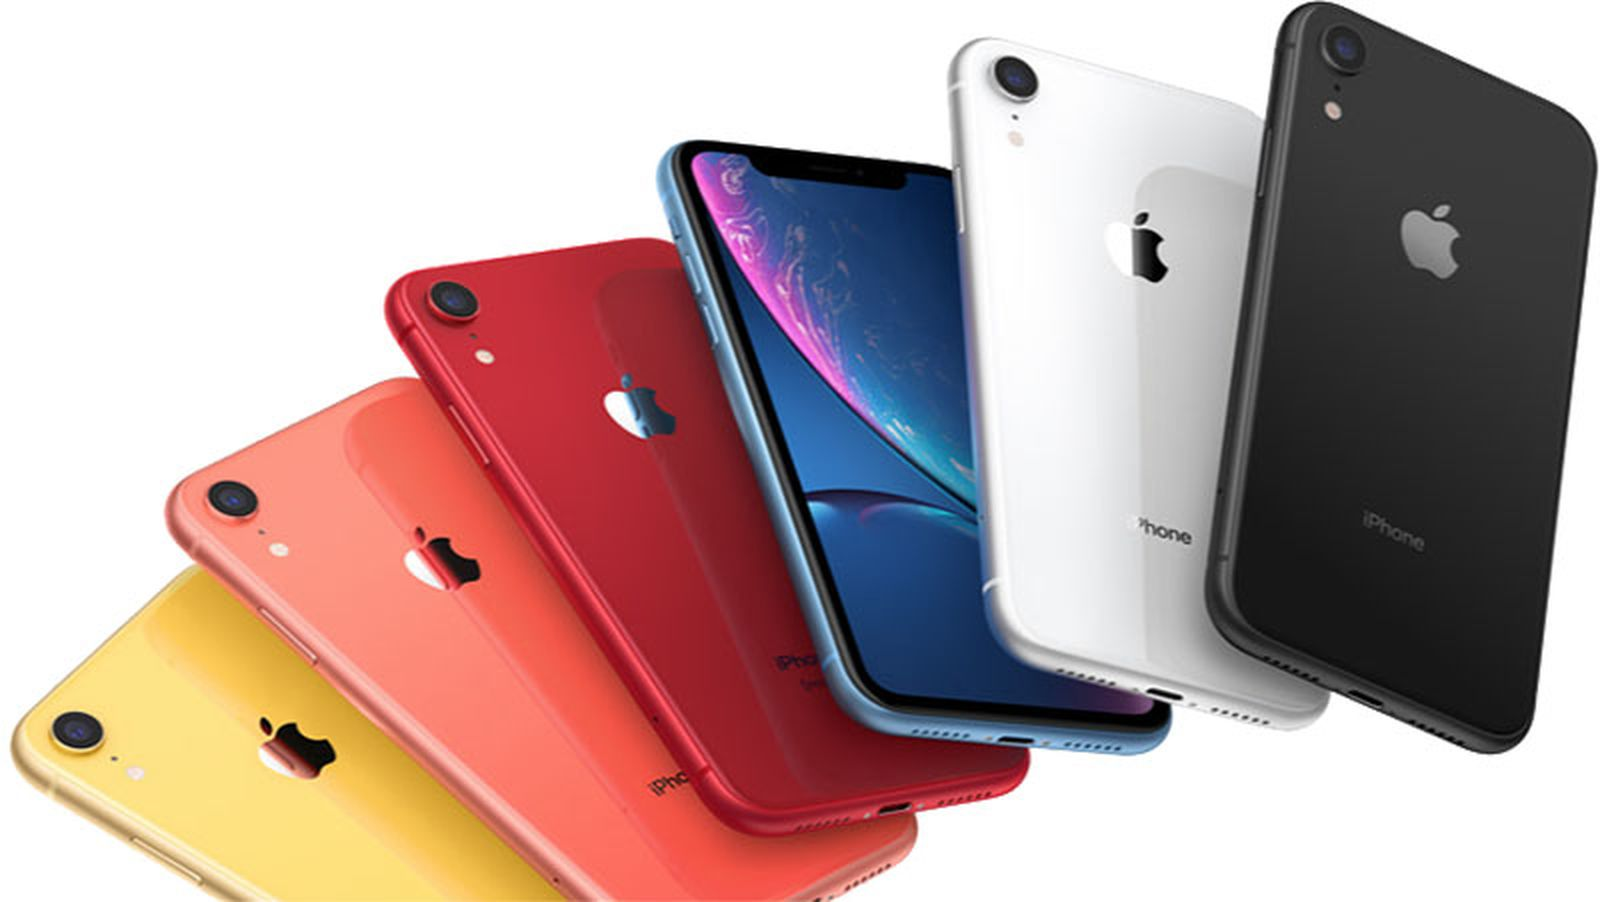 Why Cell Hub is the place to buy refurbished phones